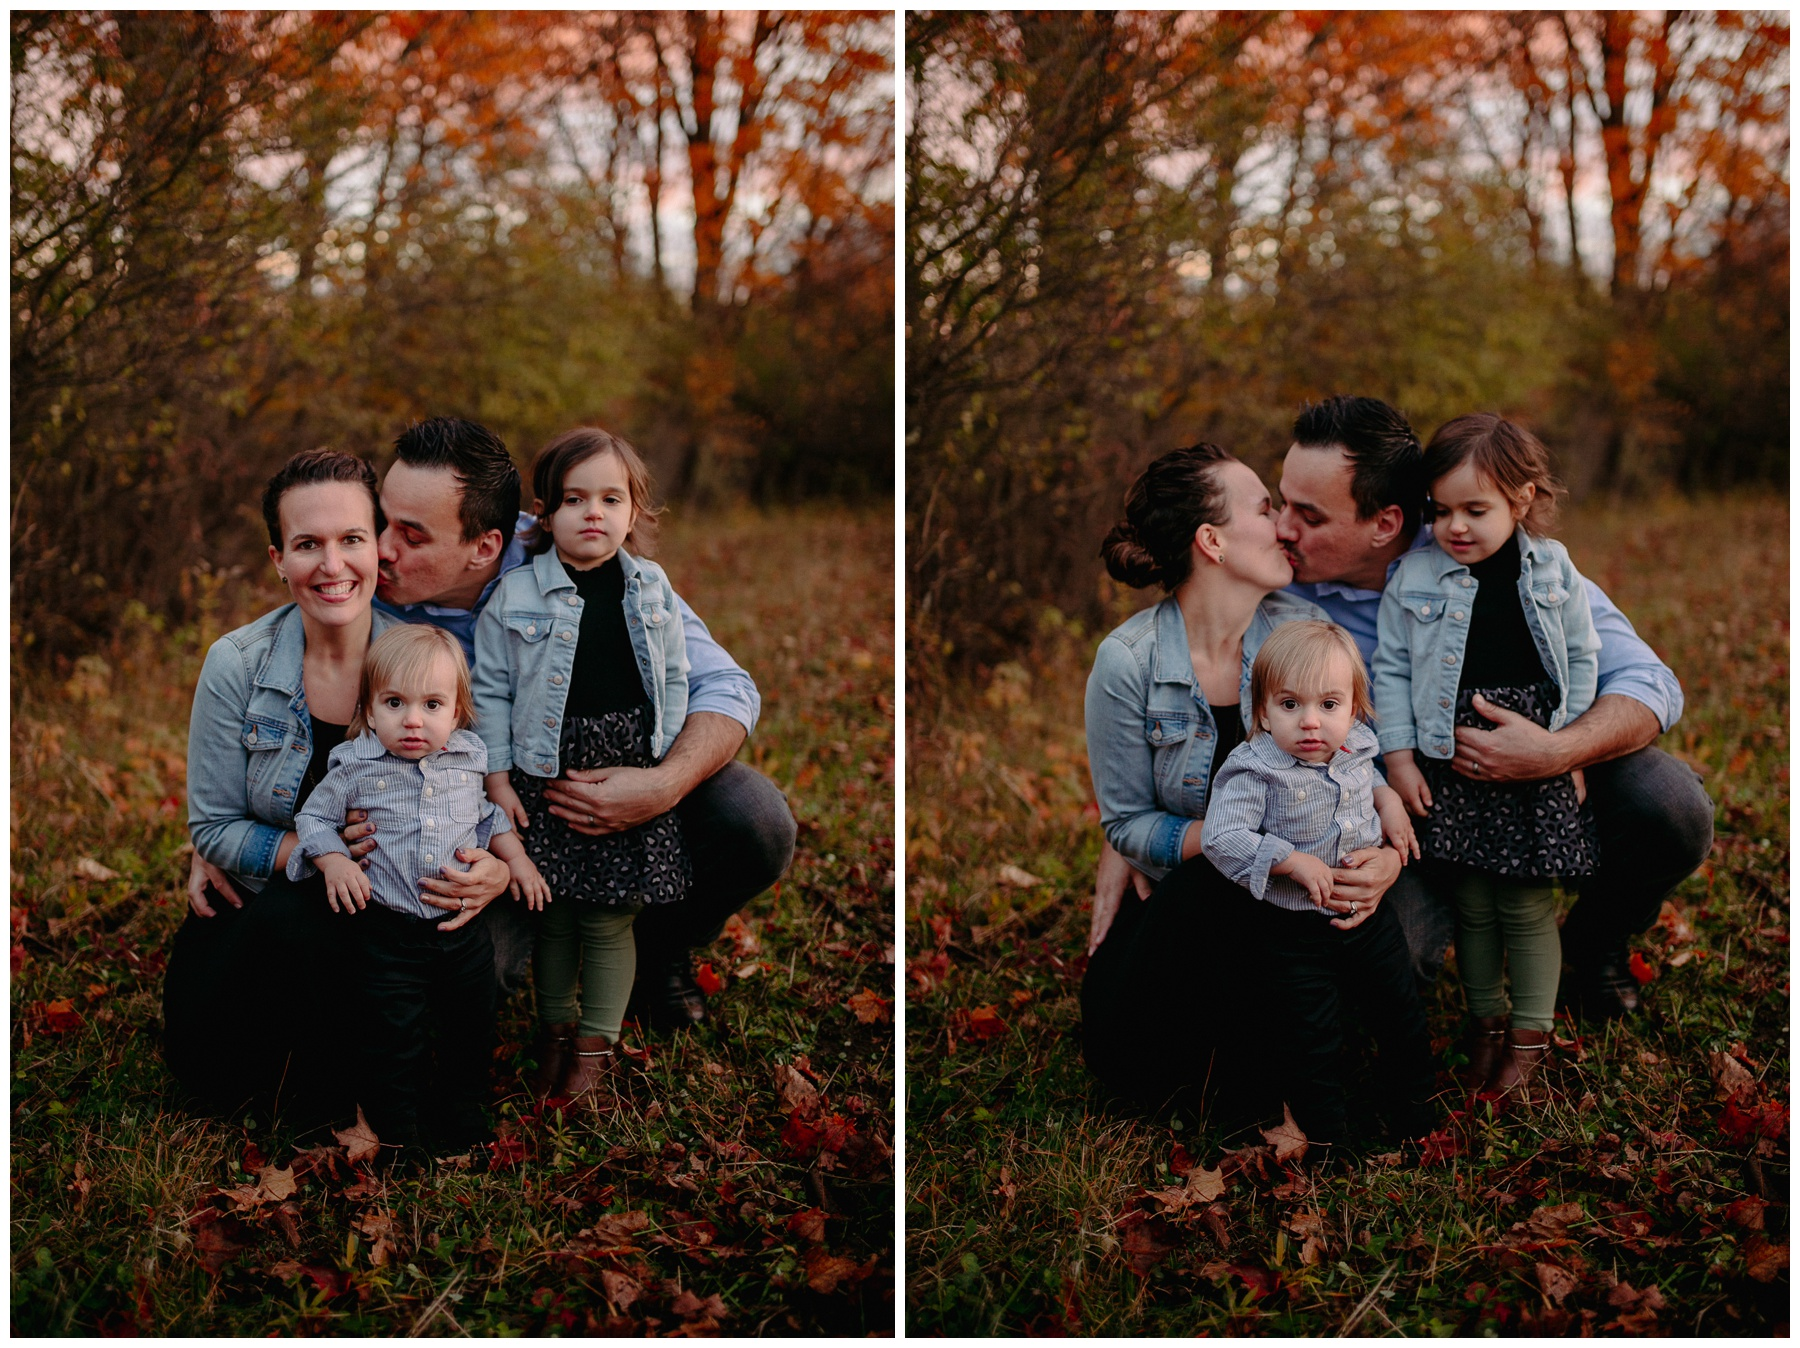 kerry ford photography - fall autumn family session perth040.jpg